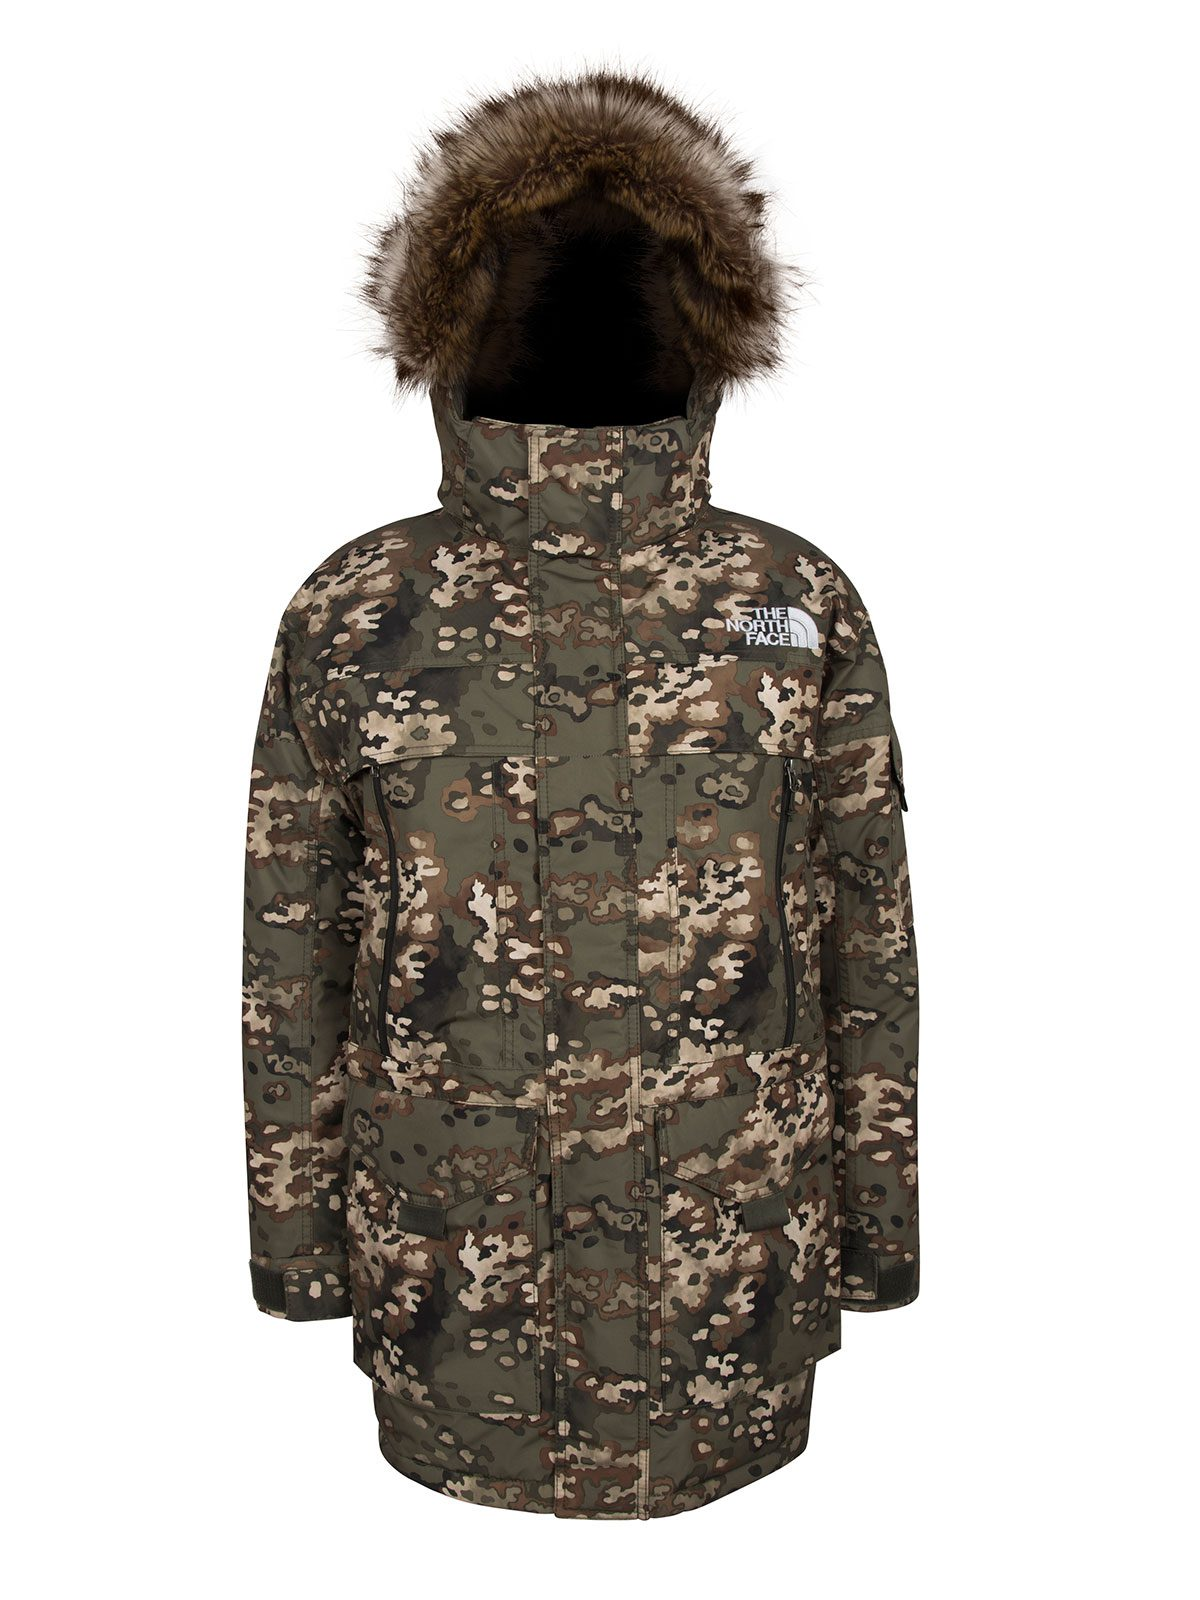 Northface Khaki Camoflage Parka Jacket €420 at Arnotts – Make a Statement